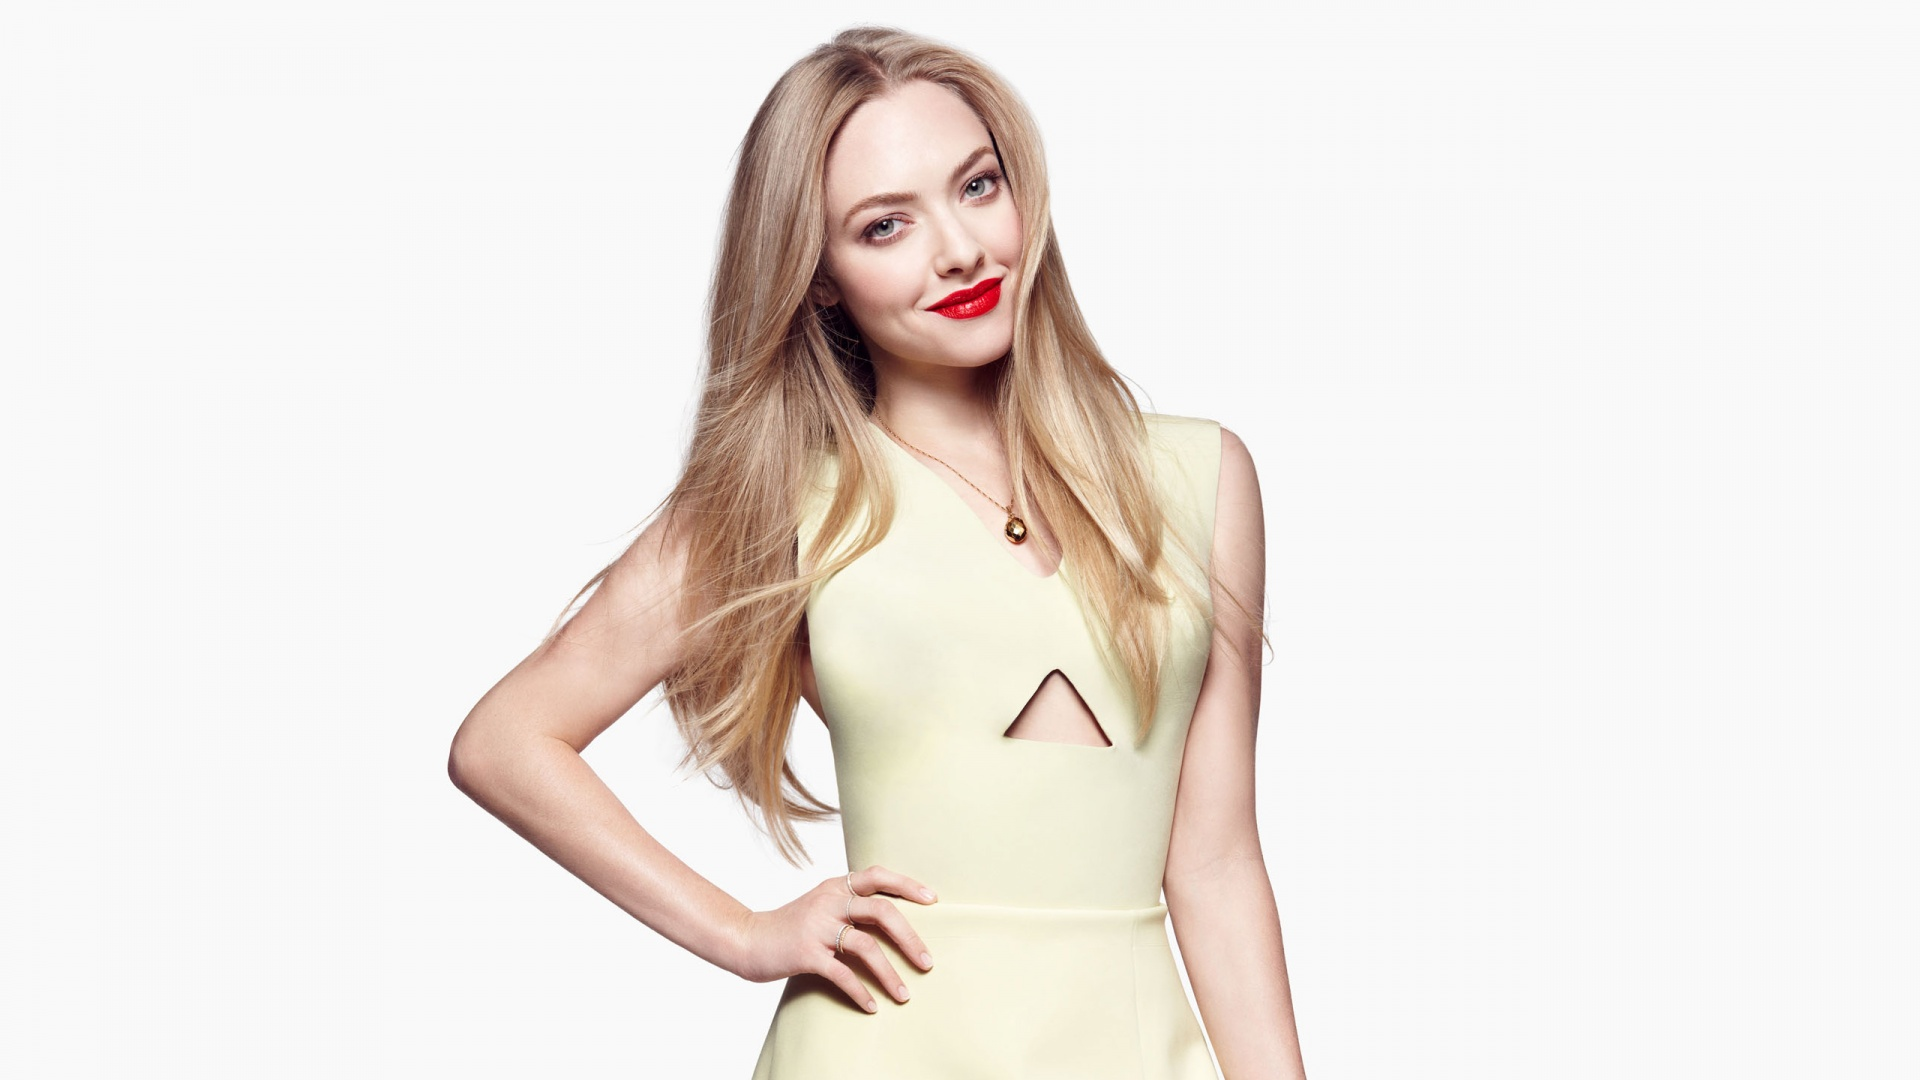 amanda seyfried wallpapers hd A2